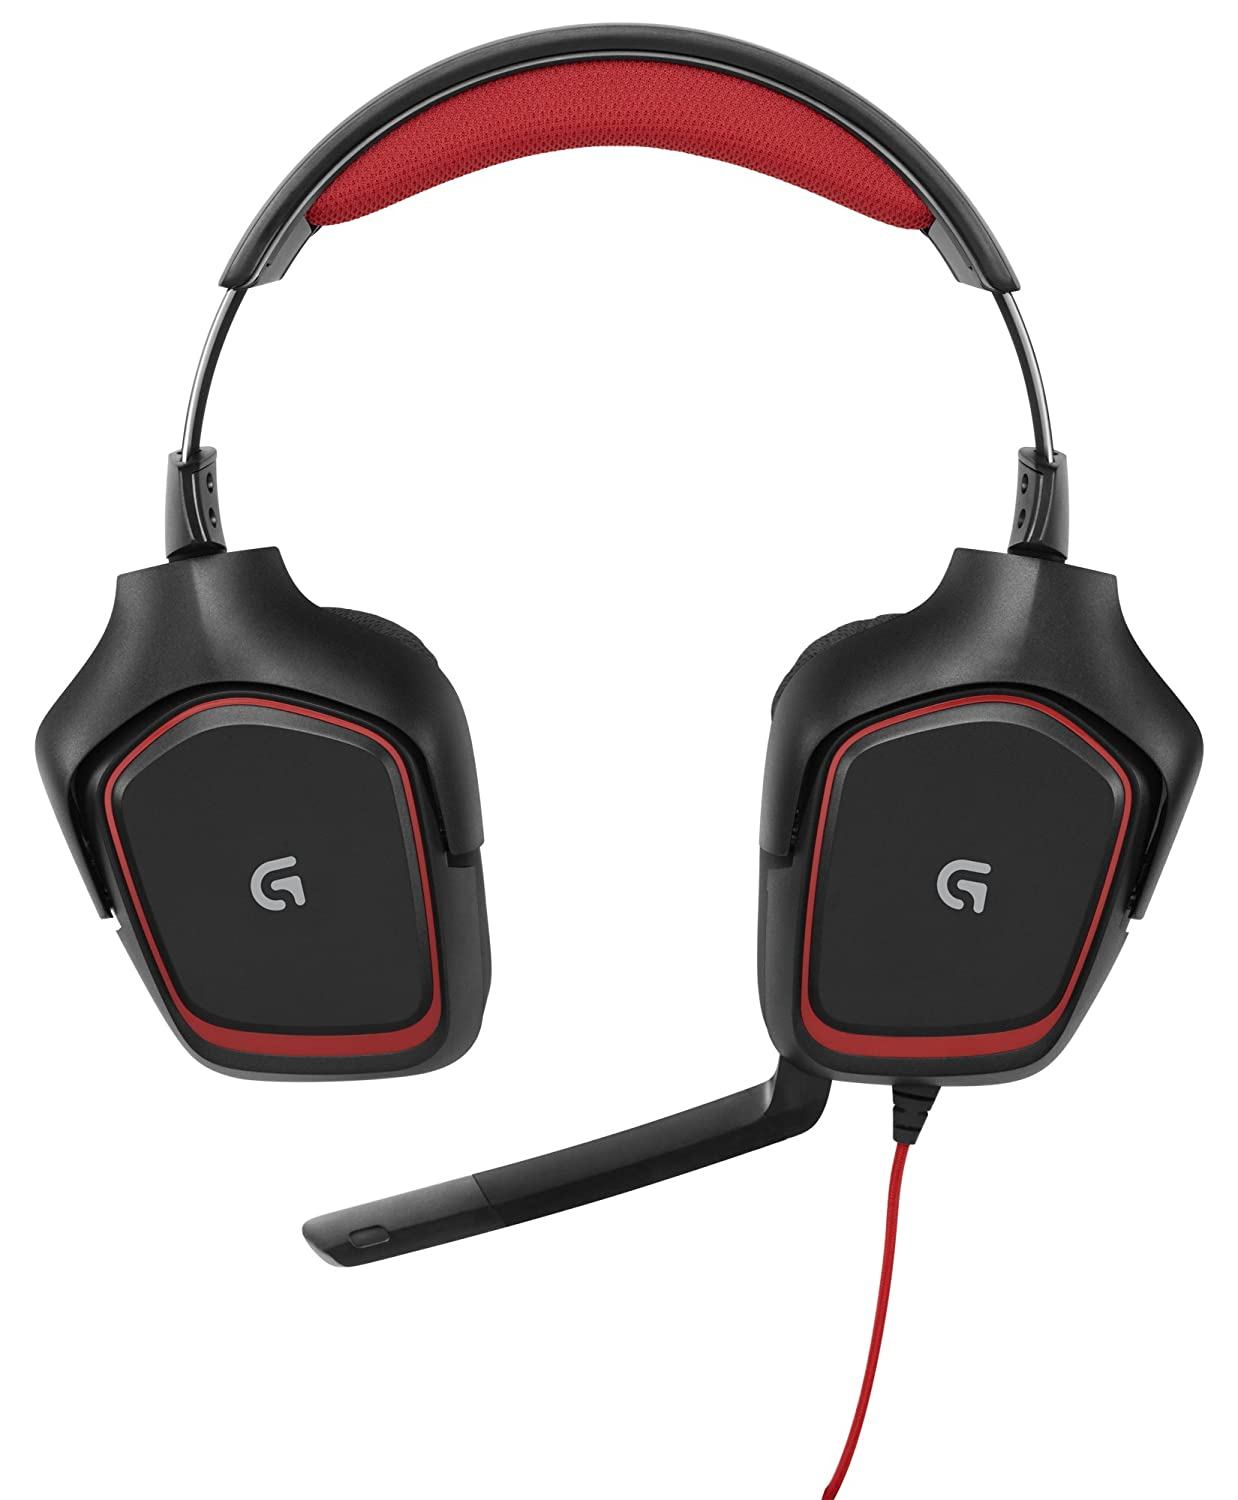 Logitech G230 Gaming Headsets come with rotating ear cups and retractable boom mic